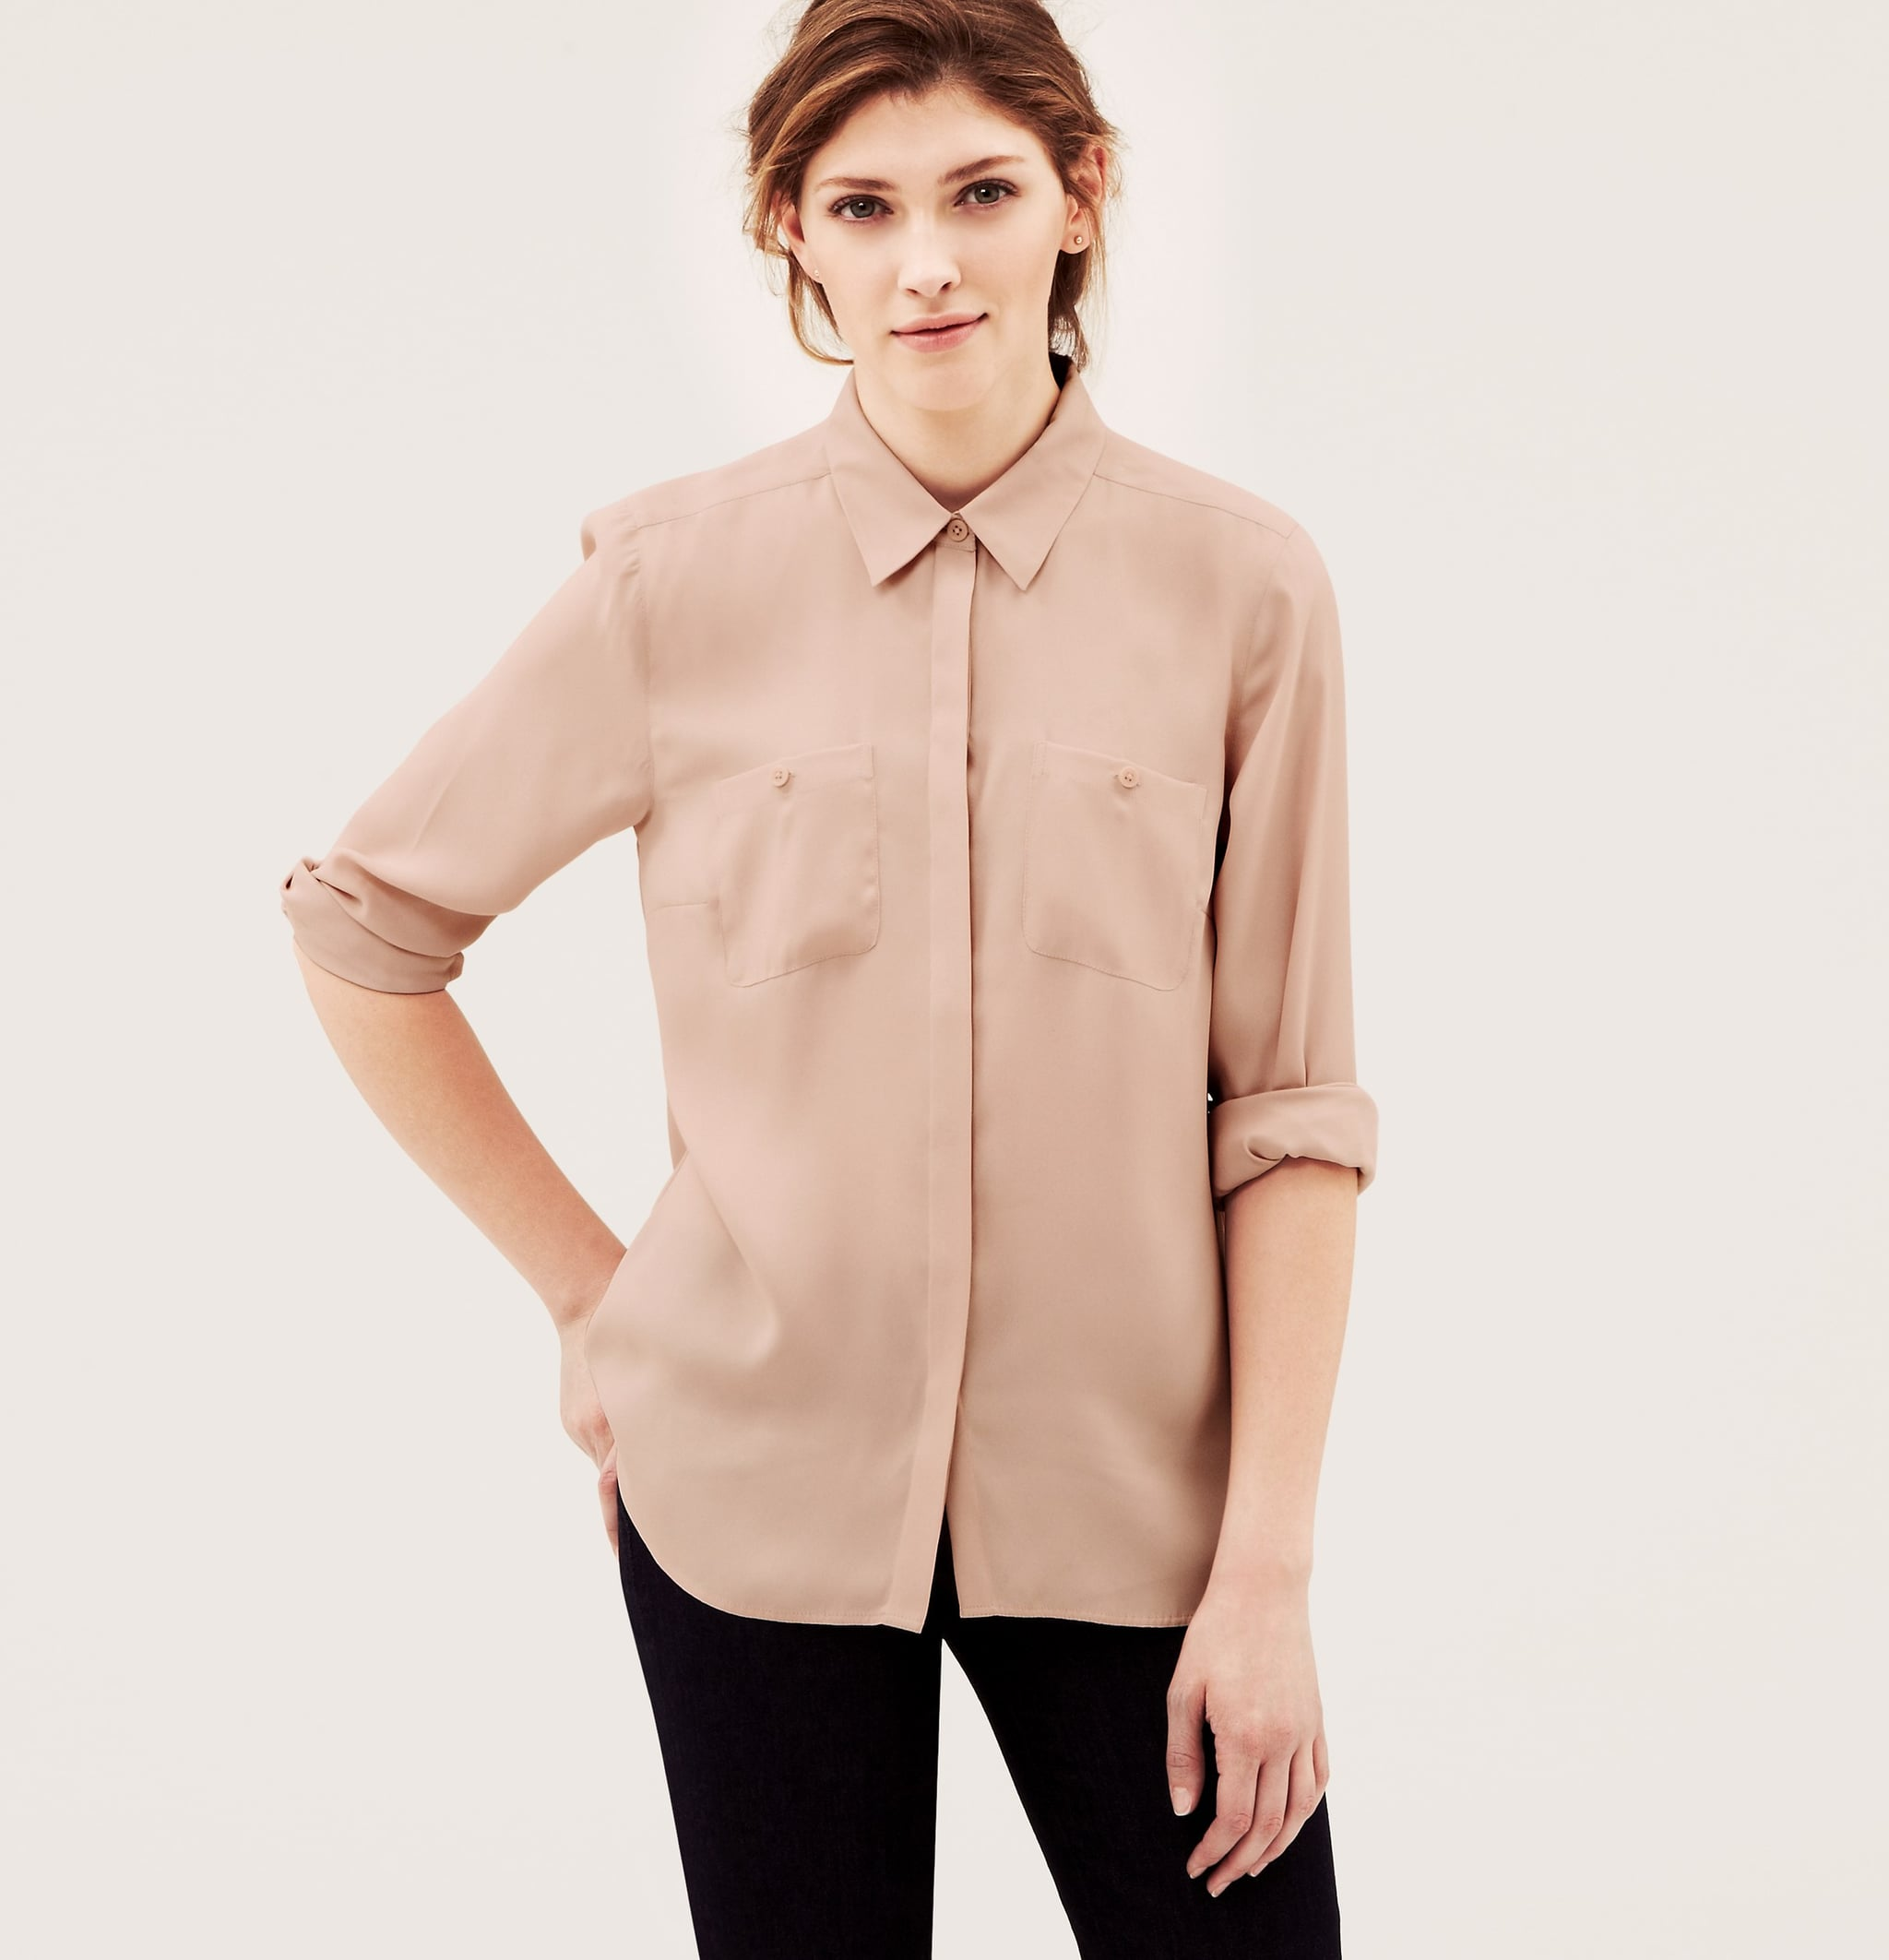 The Silky Blouse